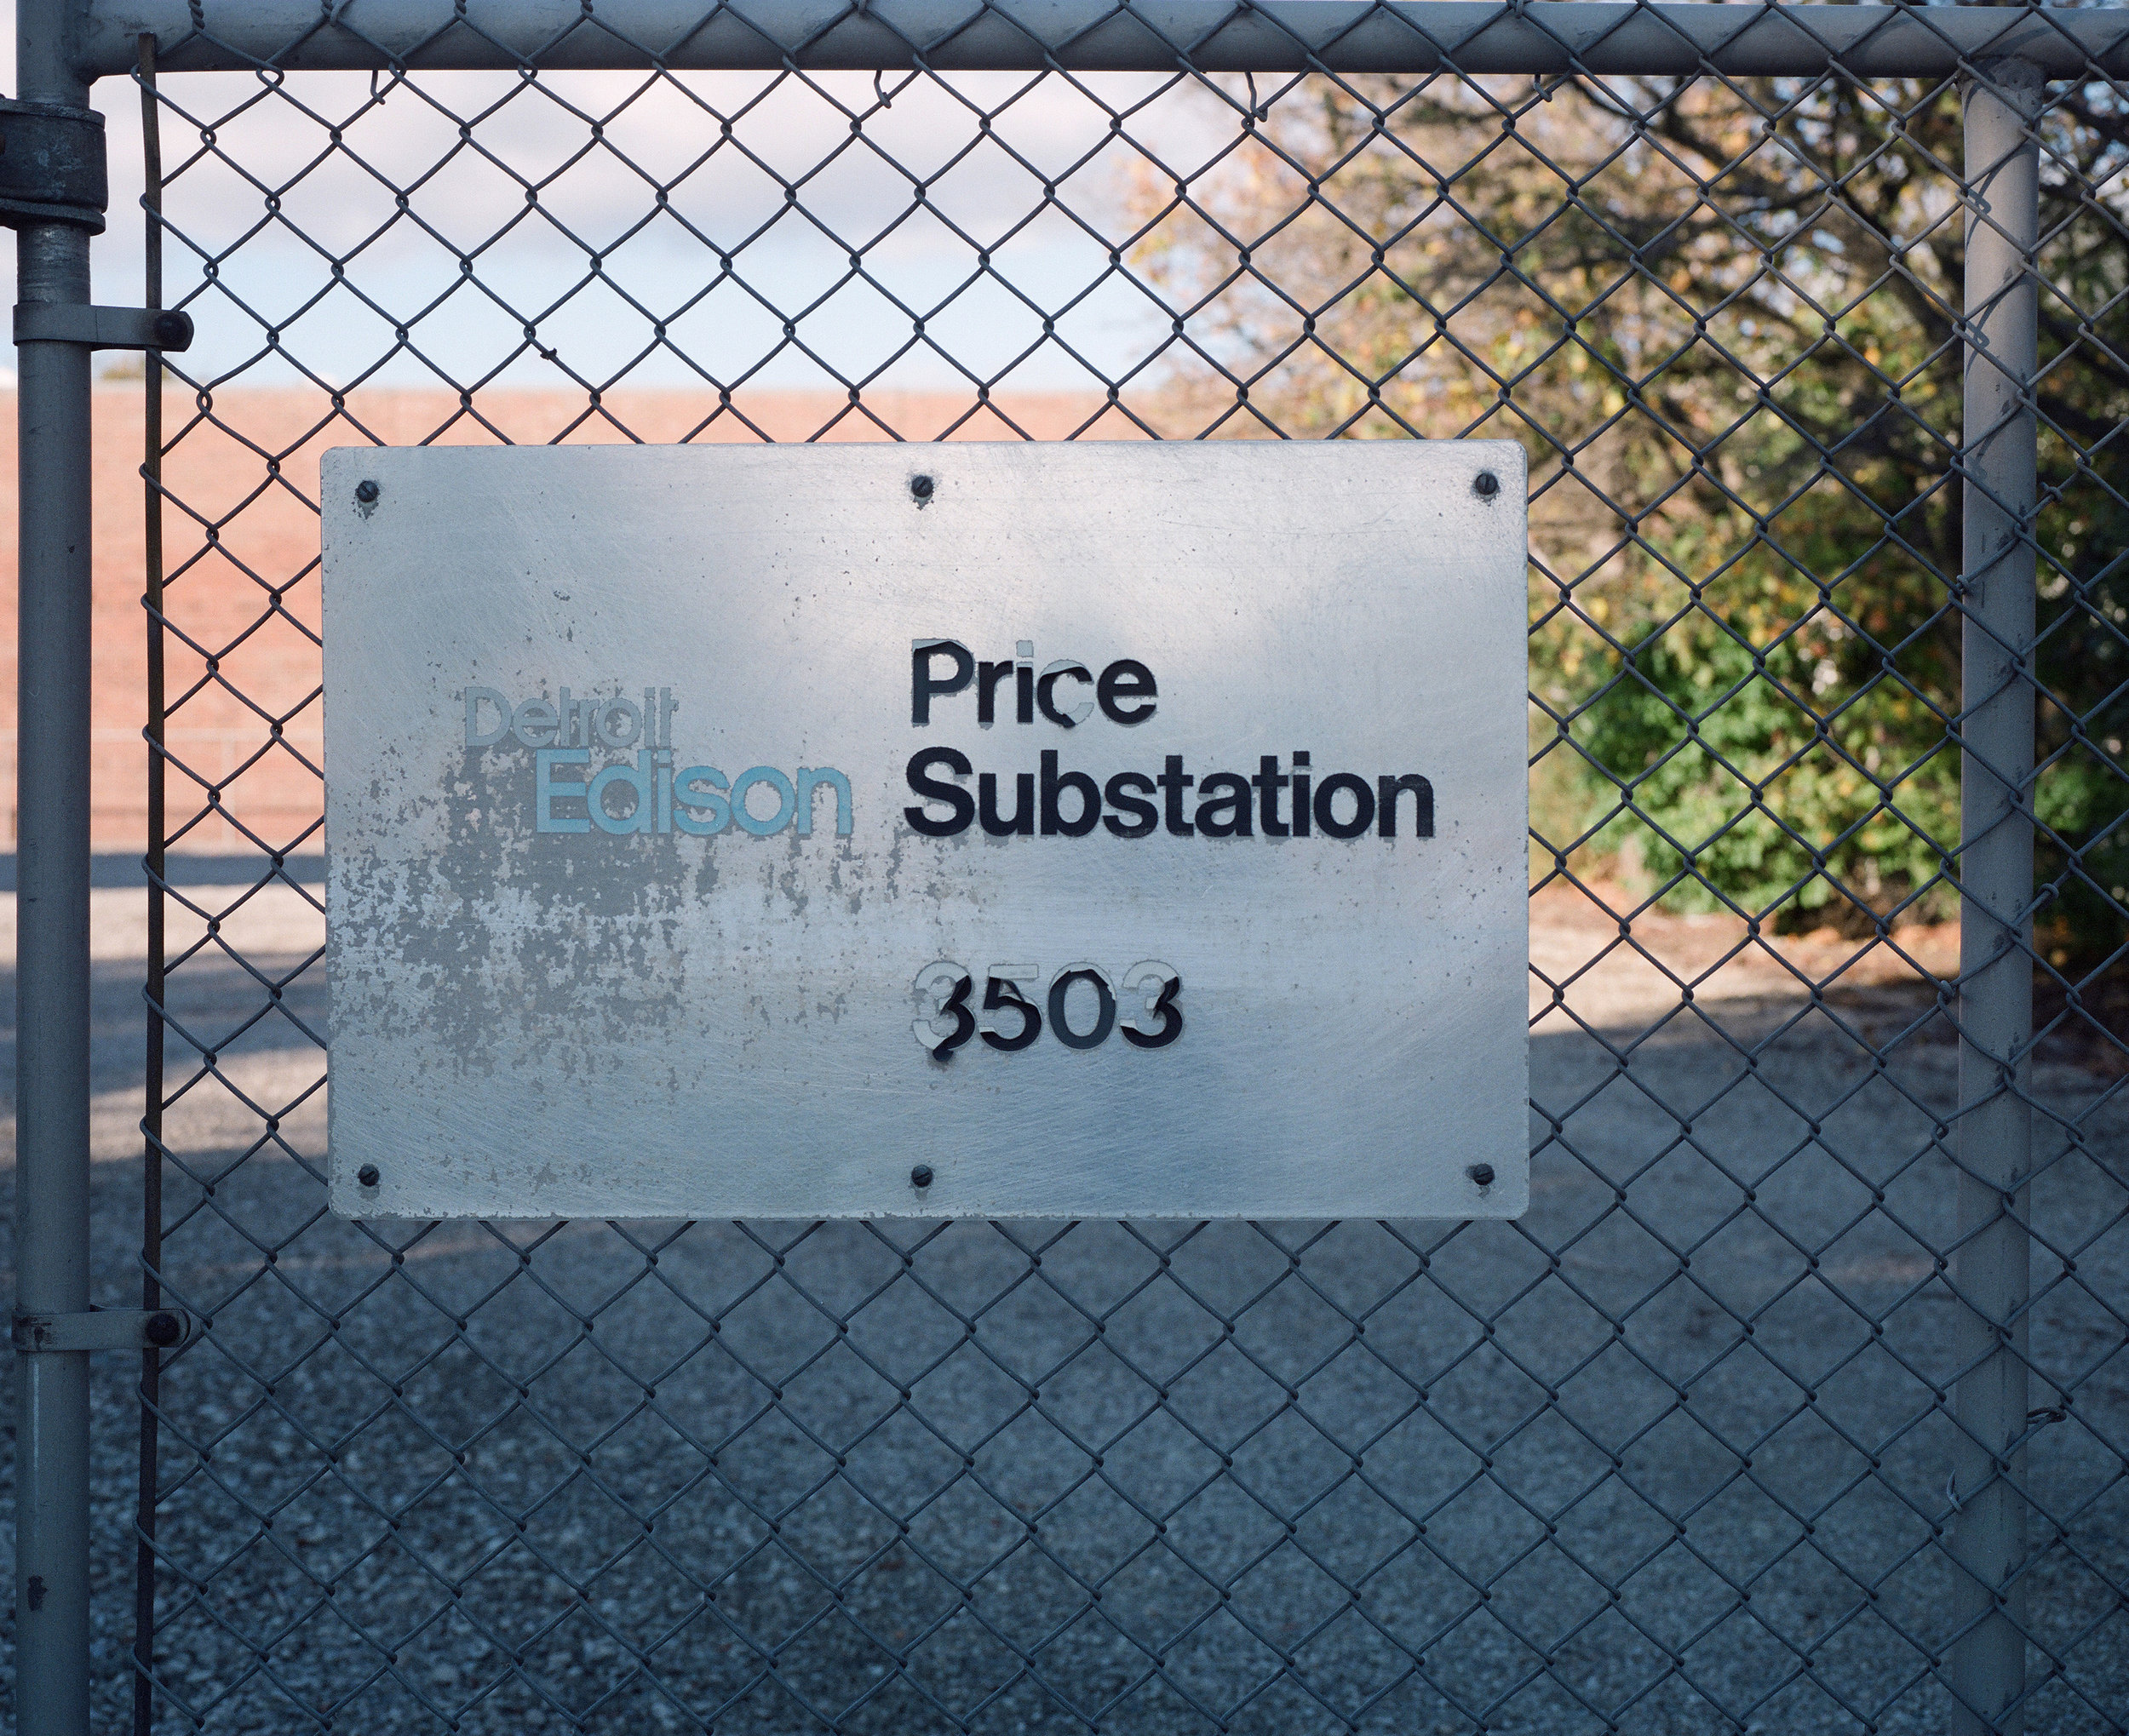 Detroit Edison, Price Substation, Ann Arbor, MI, October 2016